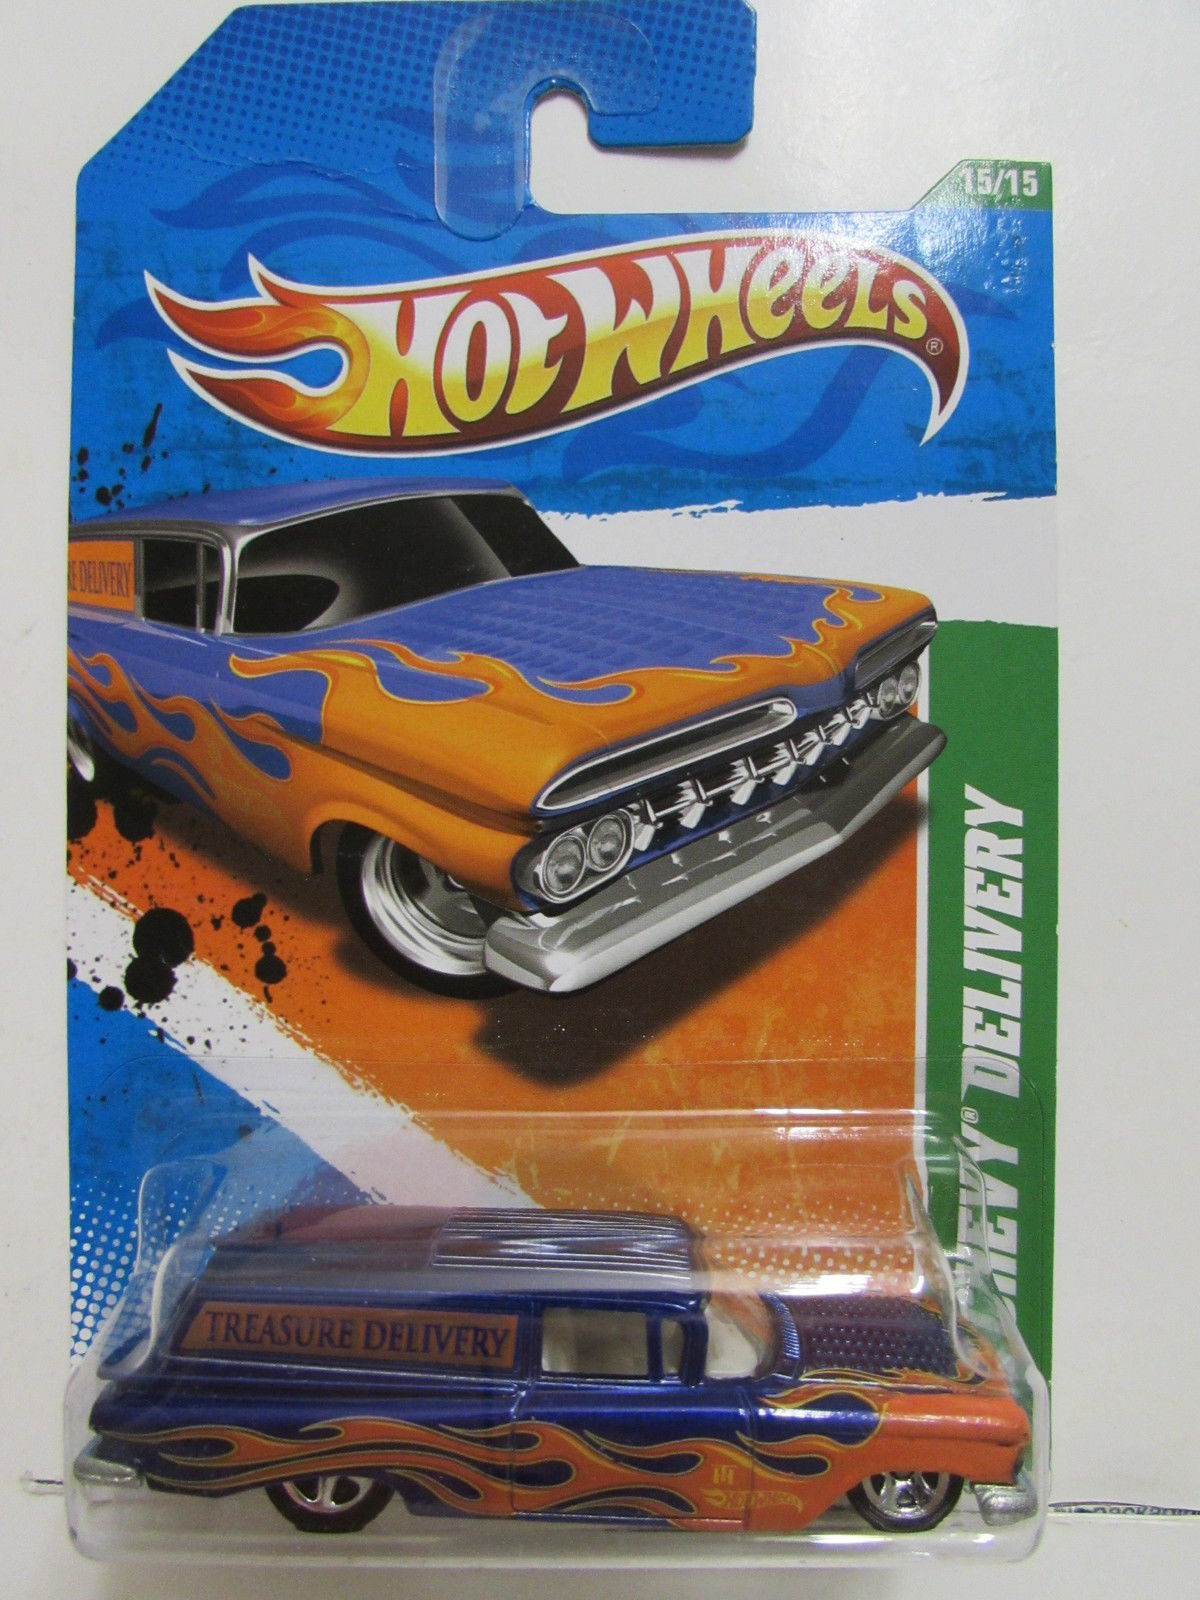 HOT WHEELS 2011 TREASURE HUNT '59 CHEVY DELIVERY REG.